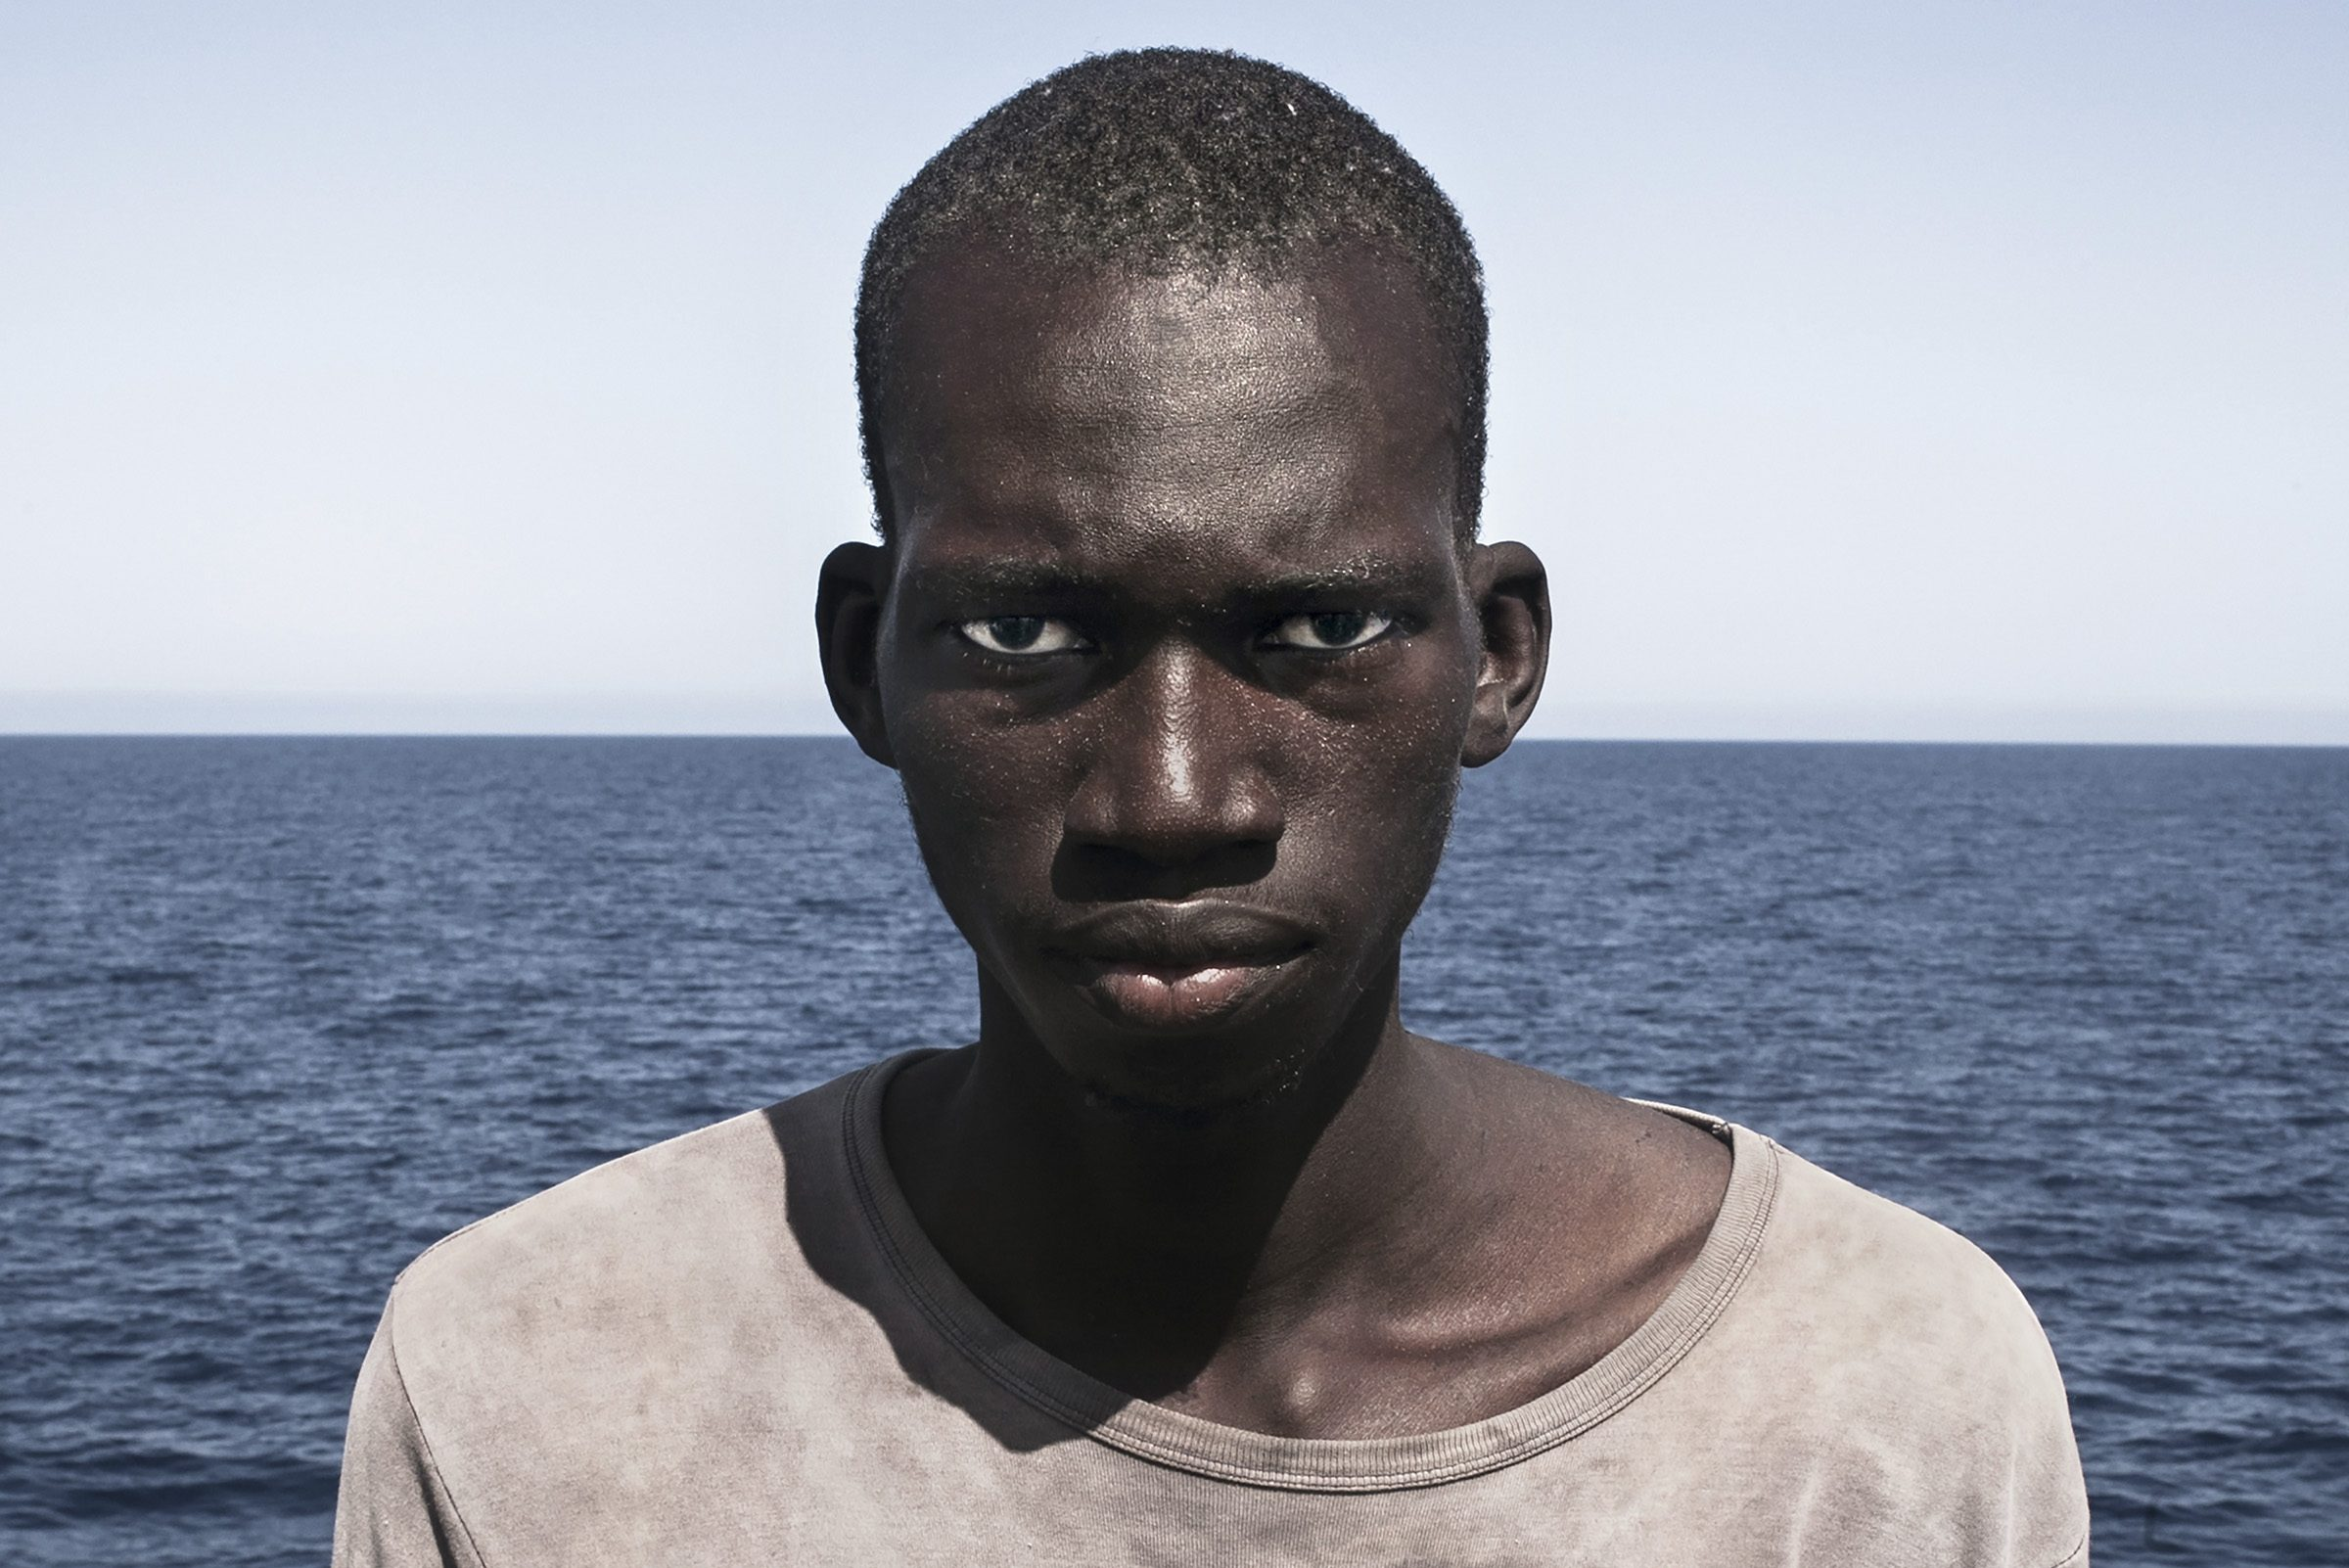 Portrait of a rescued migrant wins Taylor Wessing photography prize